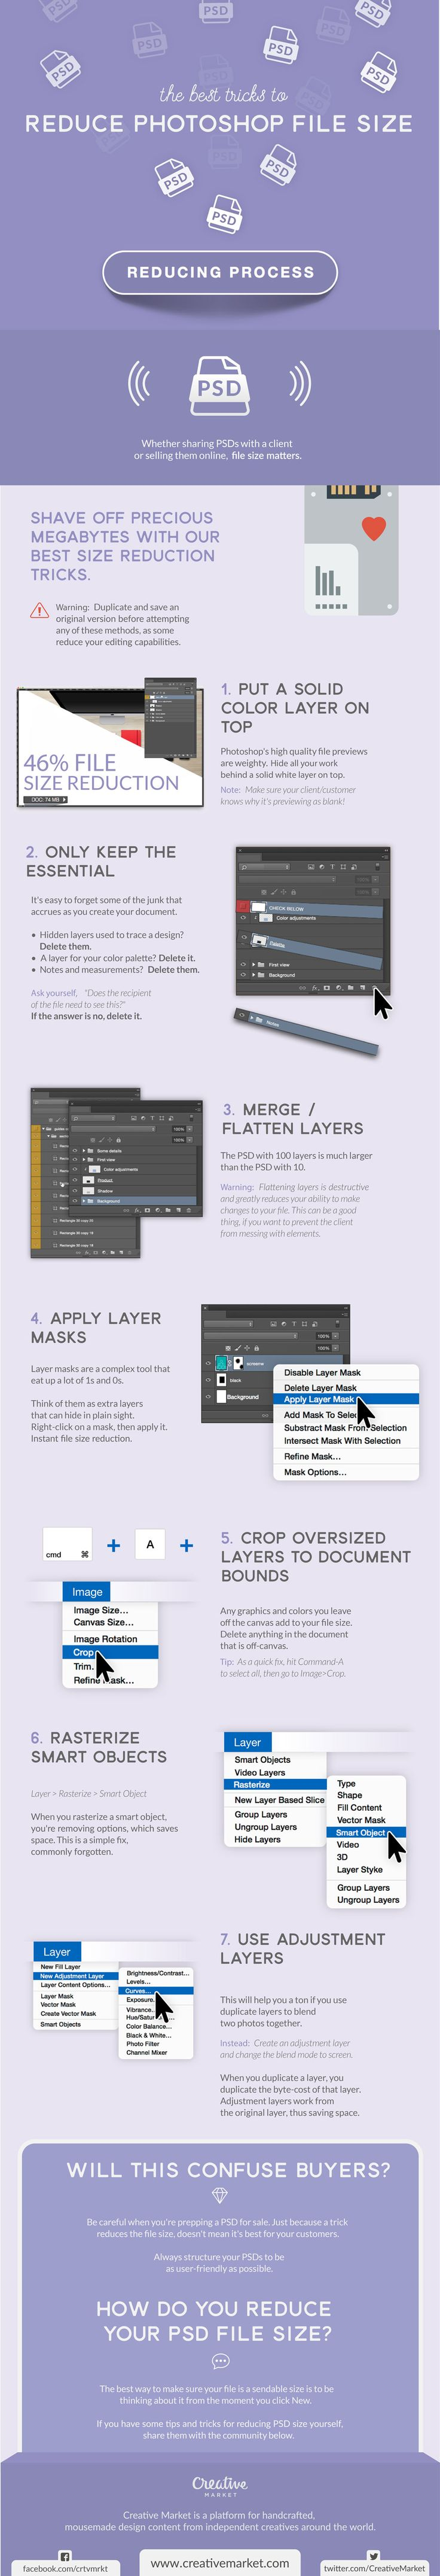 Struggling with Photoshop file size? If you can relate, you'll want to bookmark (and print!) this infographic.